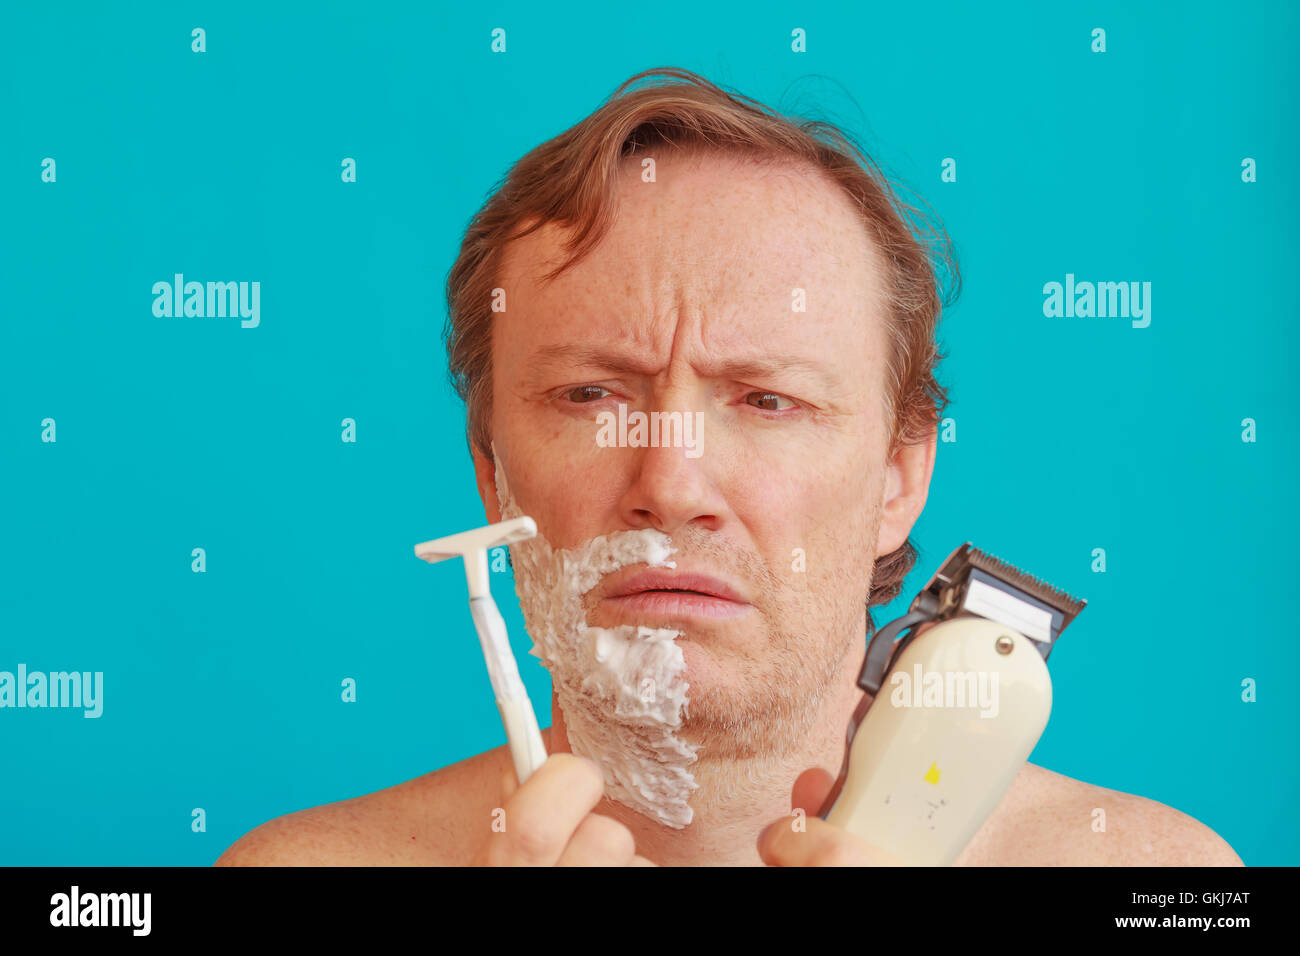 a man to shave must to choose between the razor or razor-blade - Stock Image